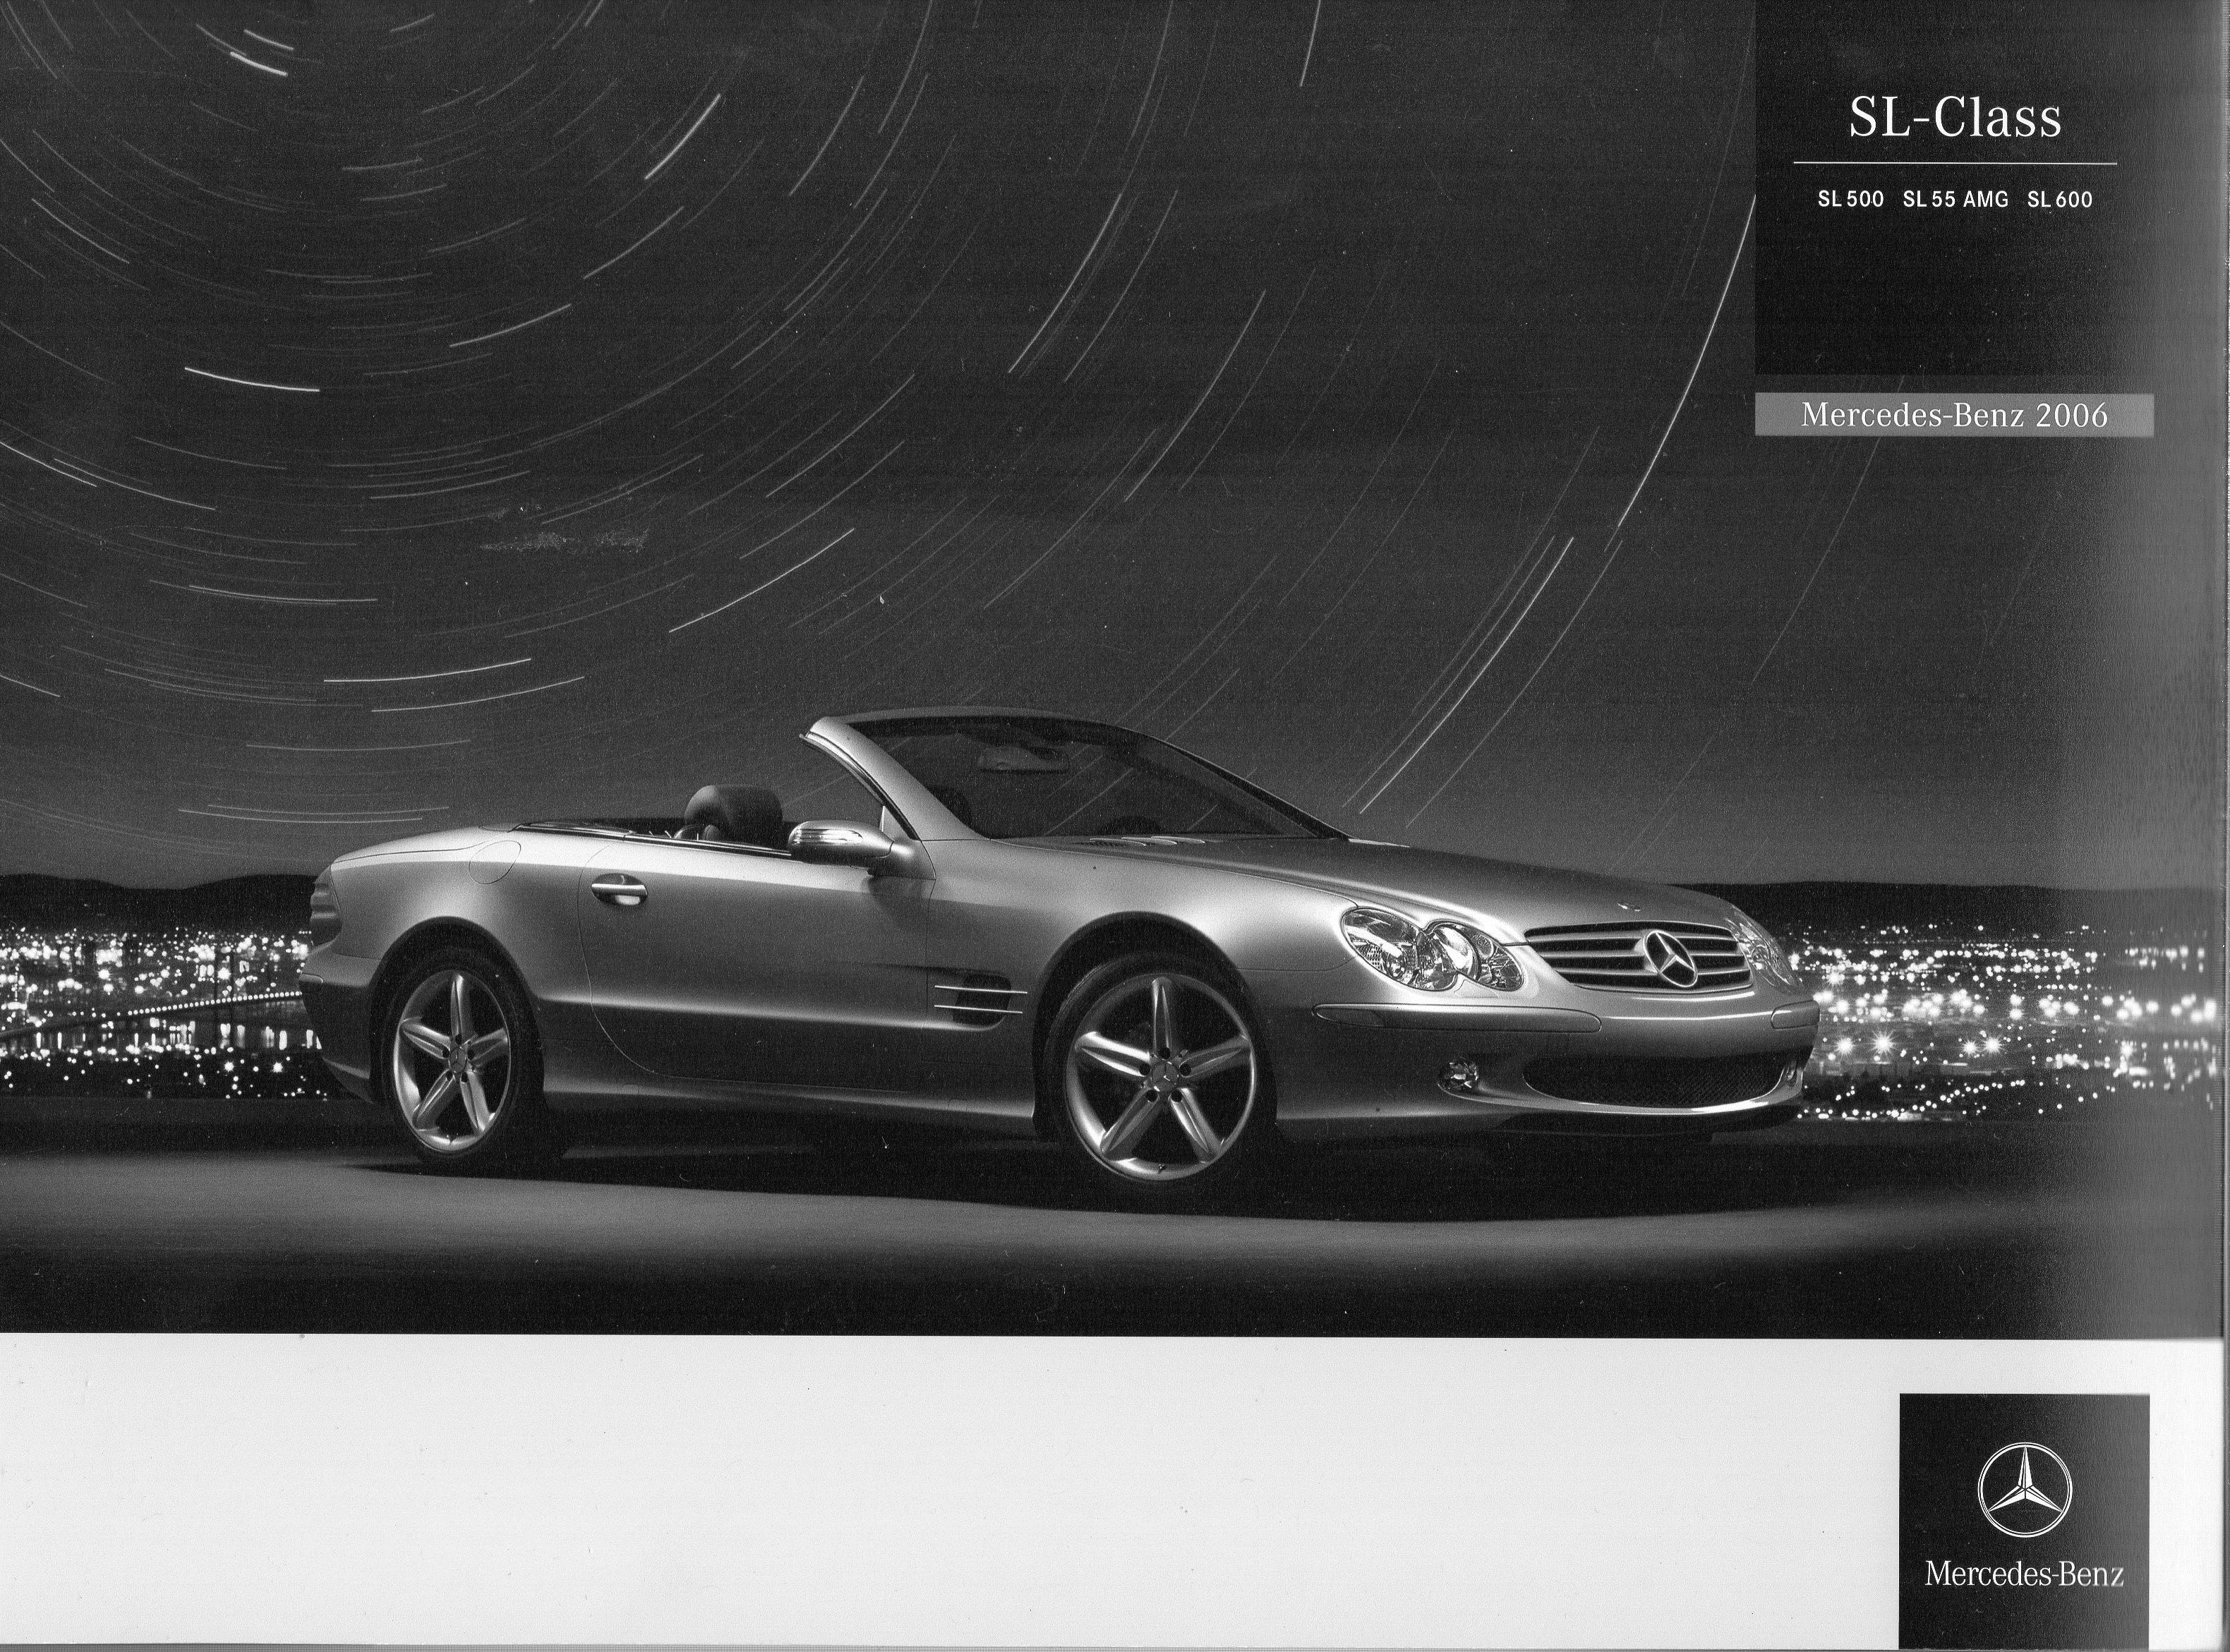 benz convertible wiki conversion mercedes used sec file front